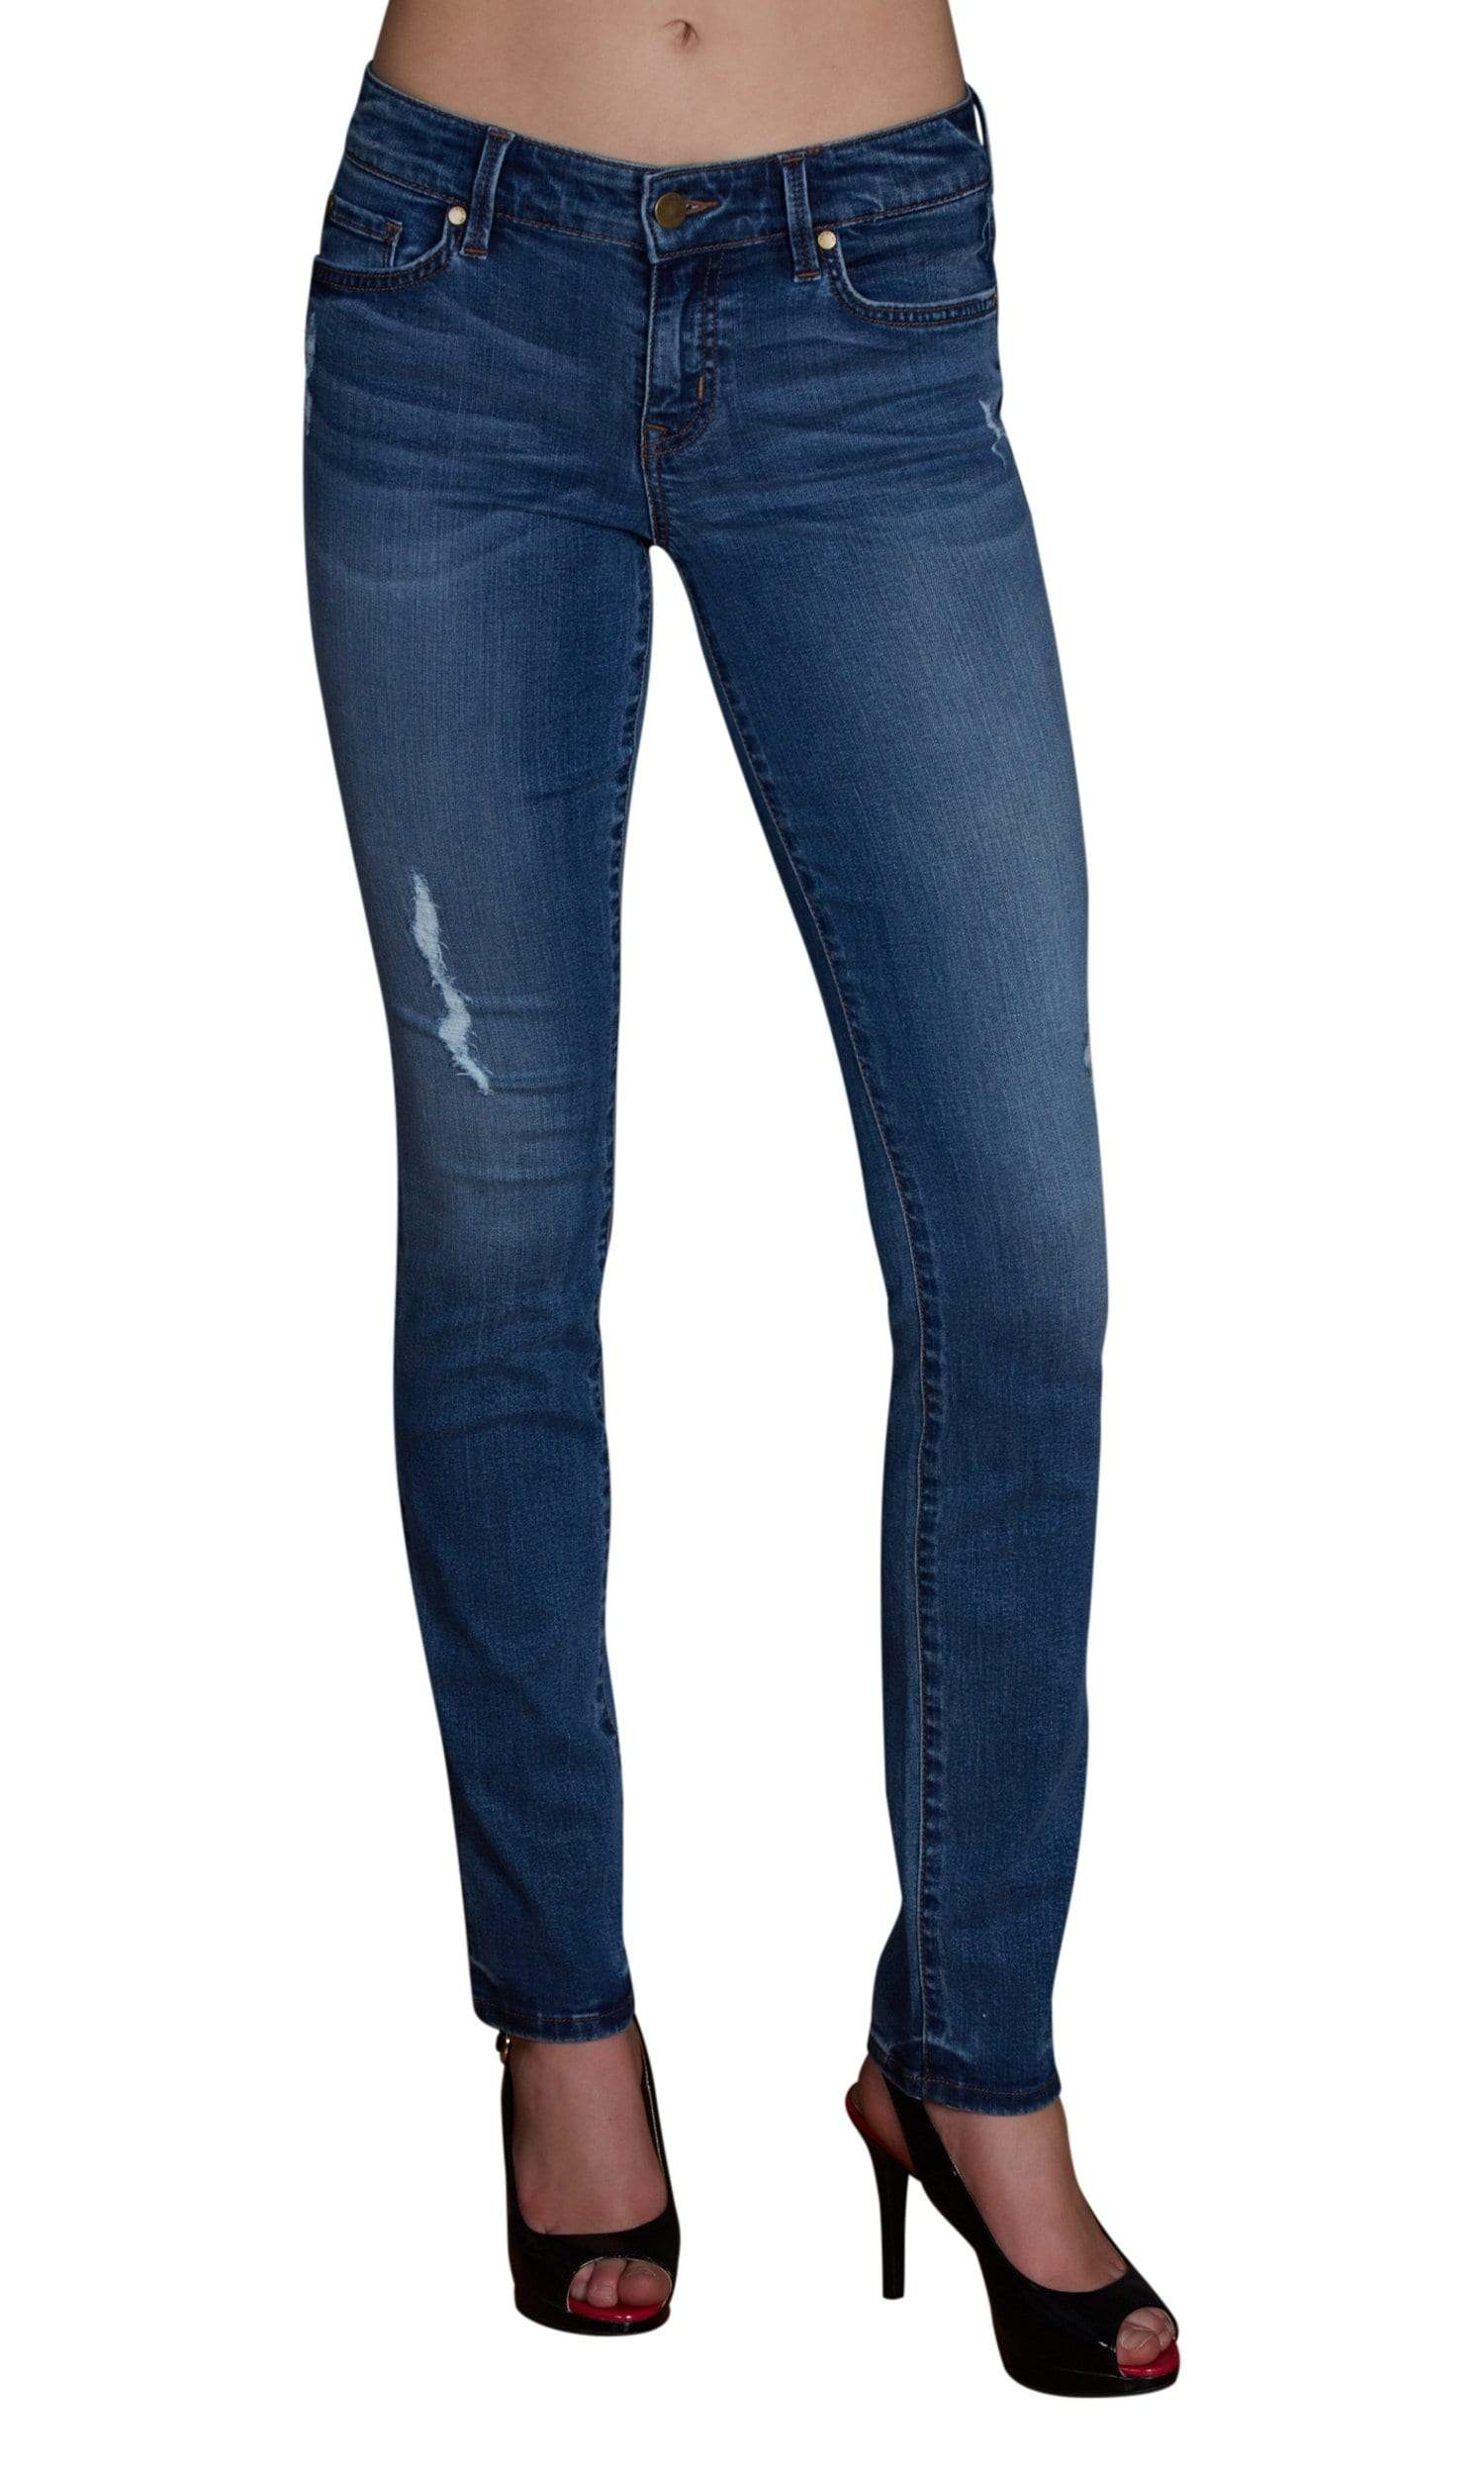 Level 99 Lily Skinny Straight Denim - Tibron